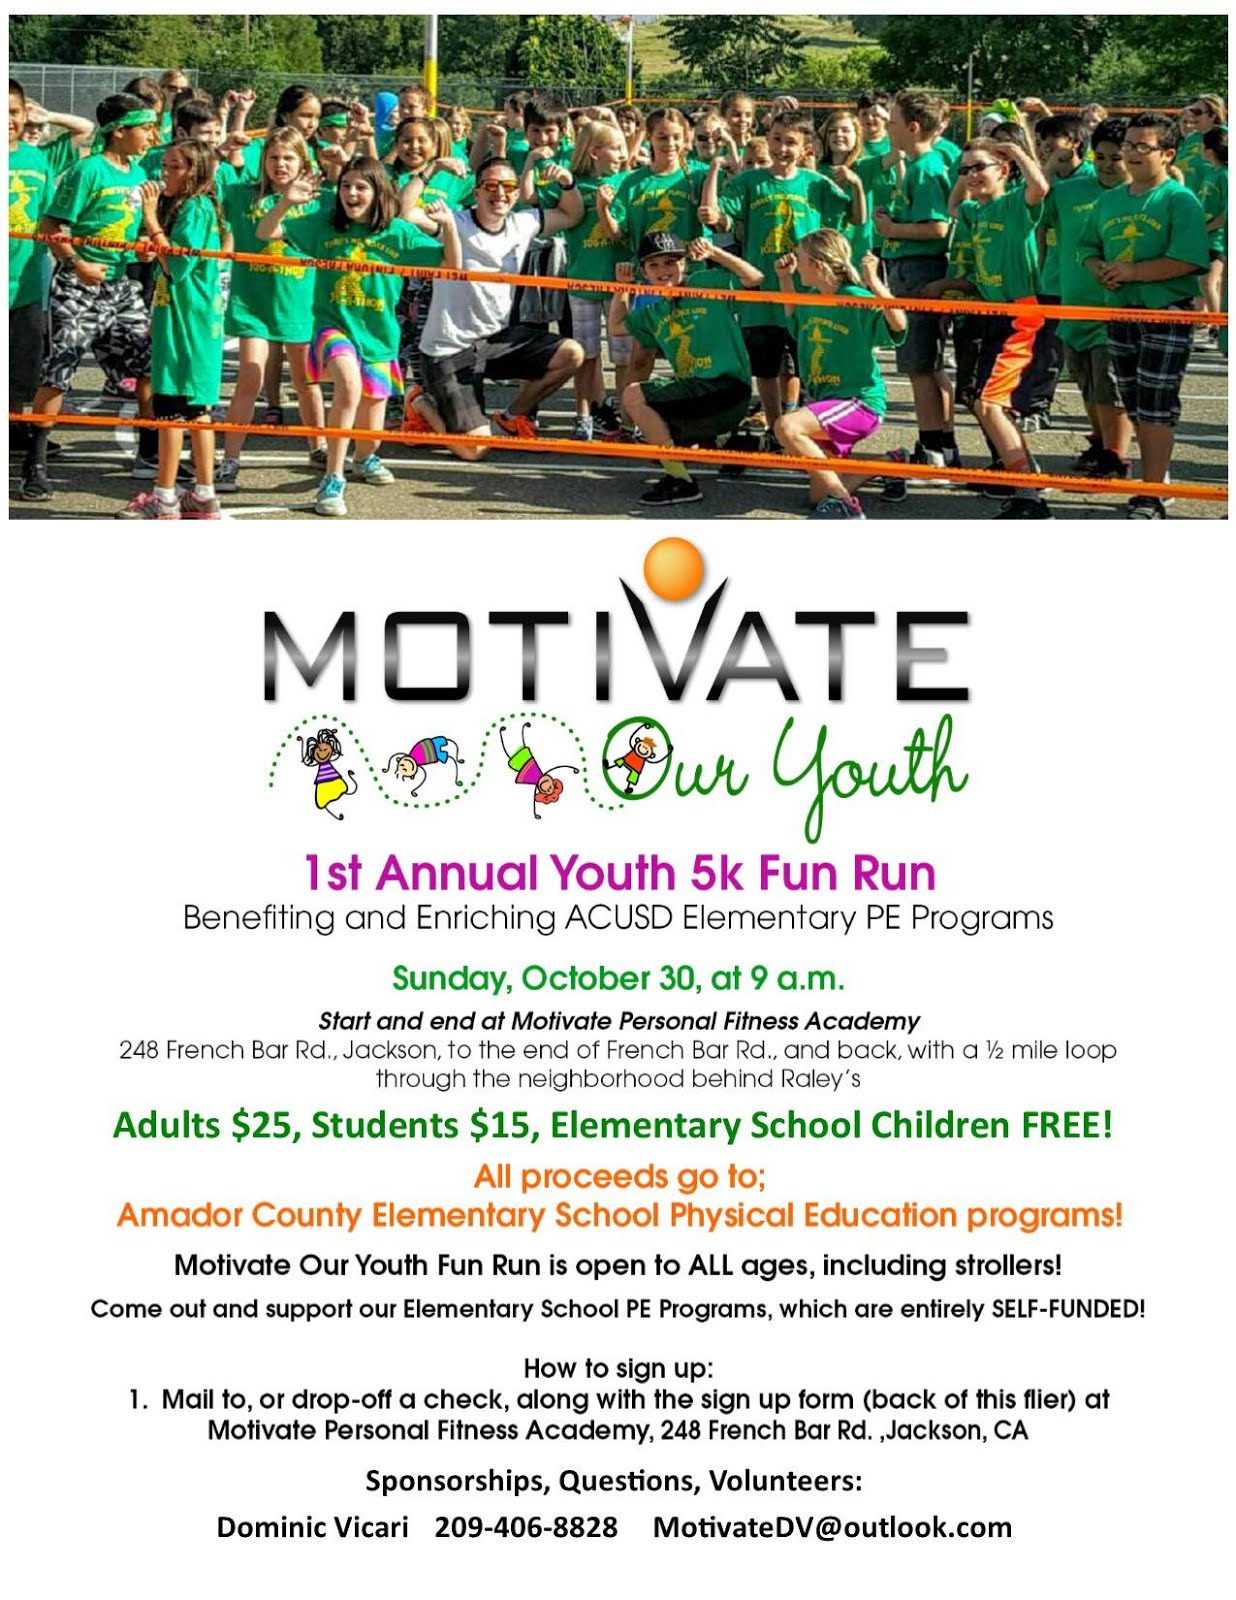 Motivate Our Youth: 5K Fun Run - Sun Oct 30